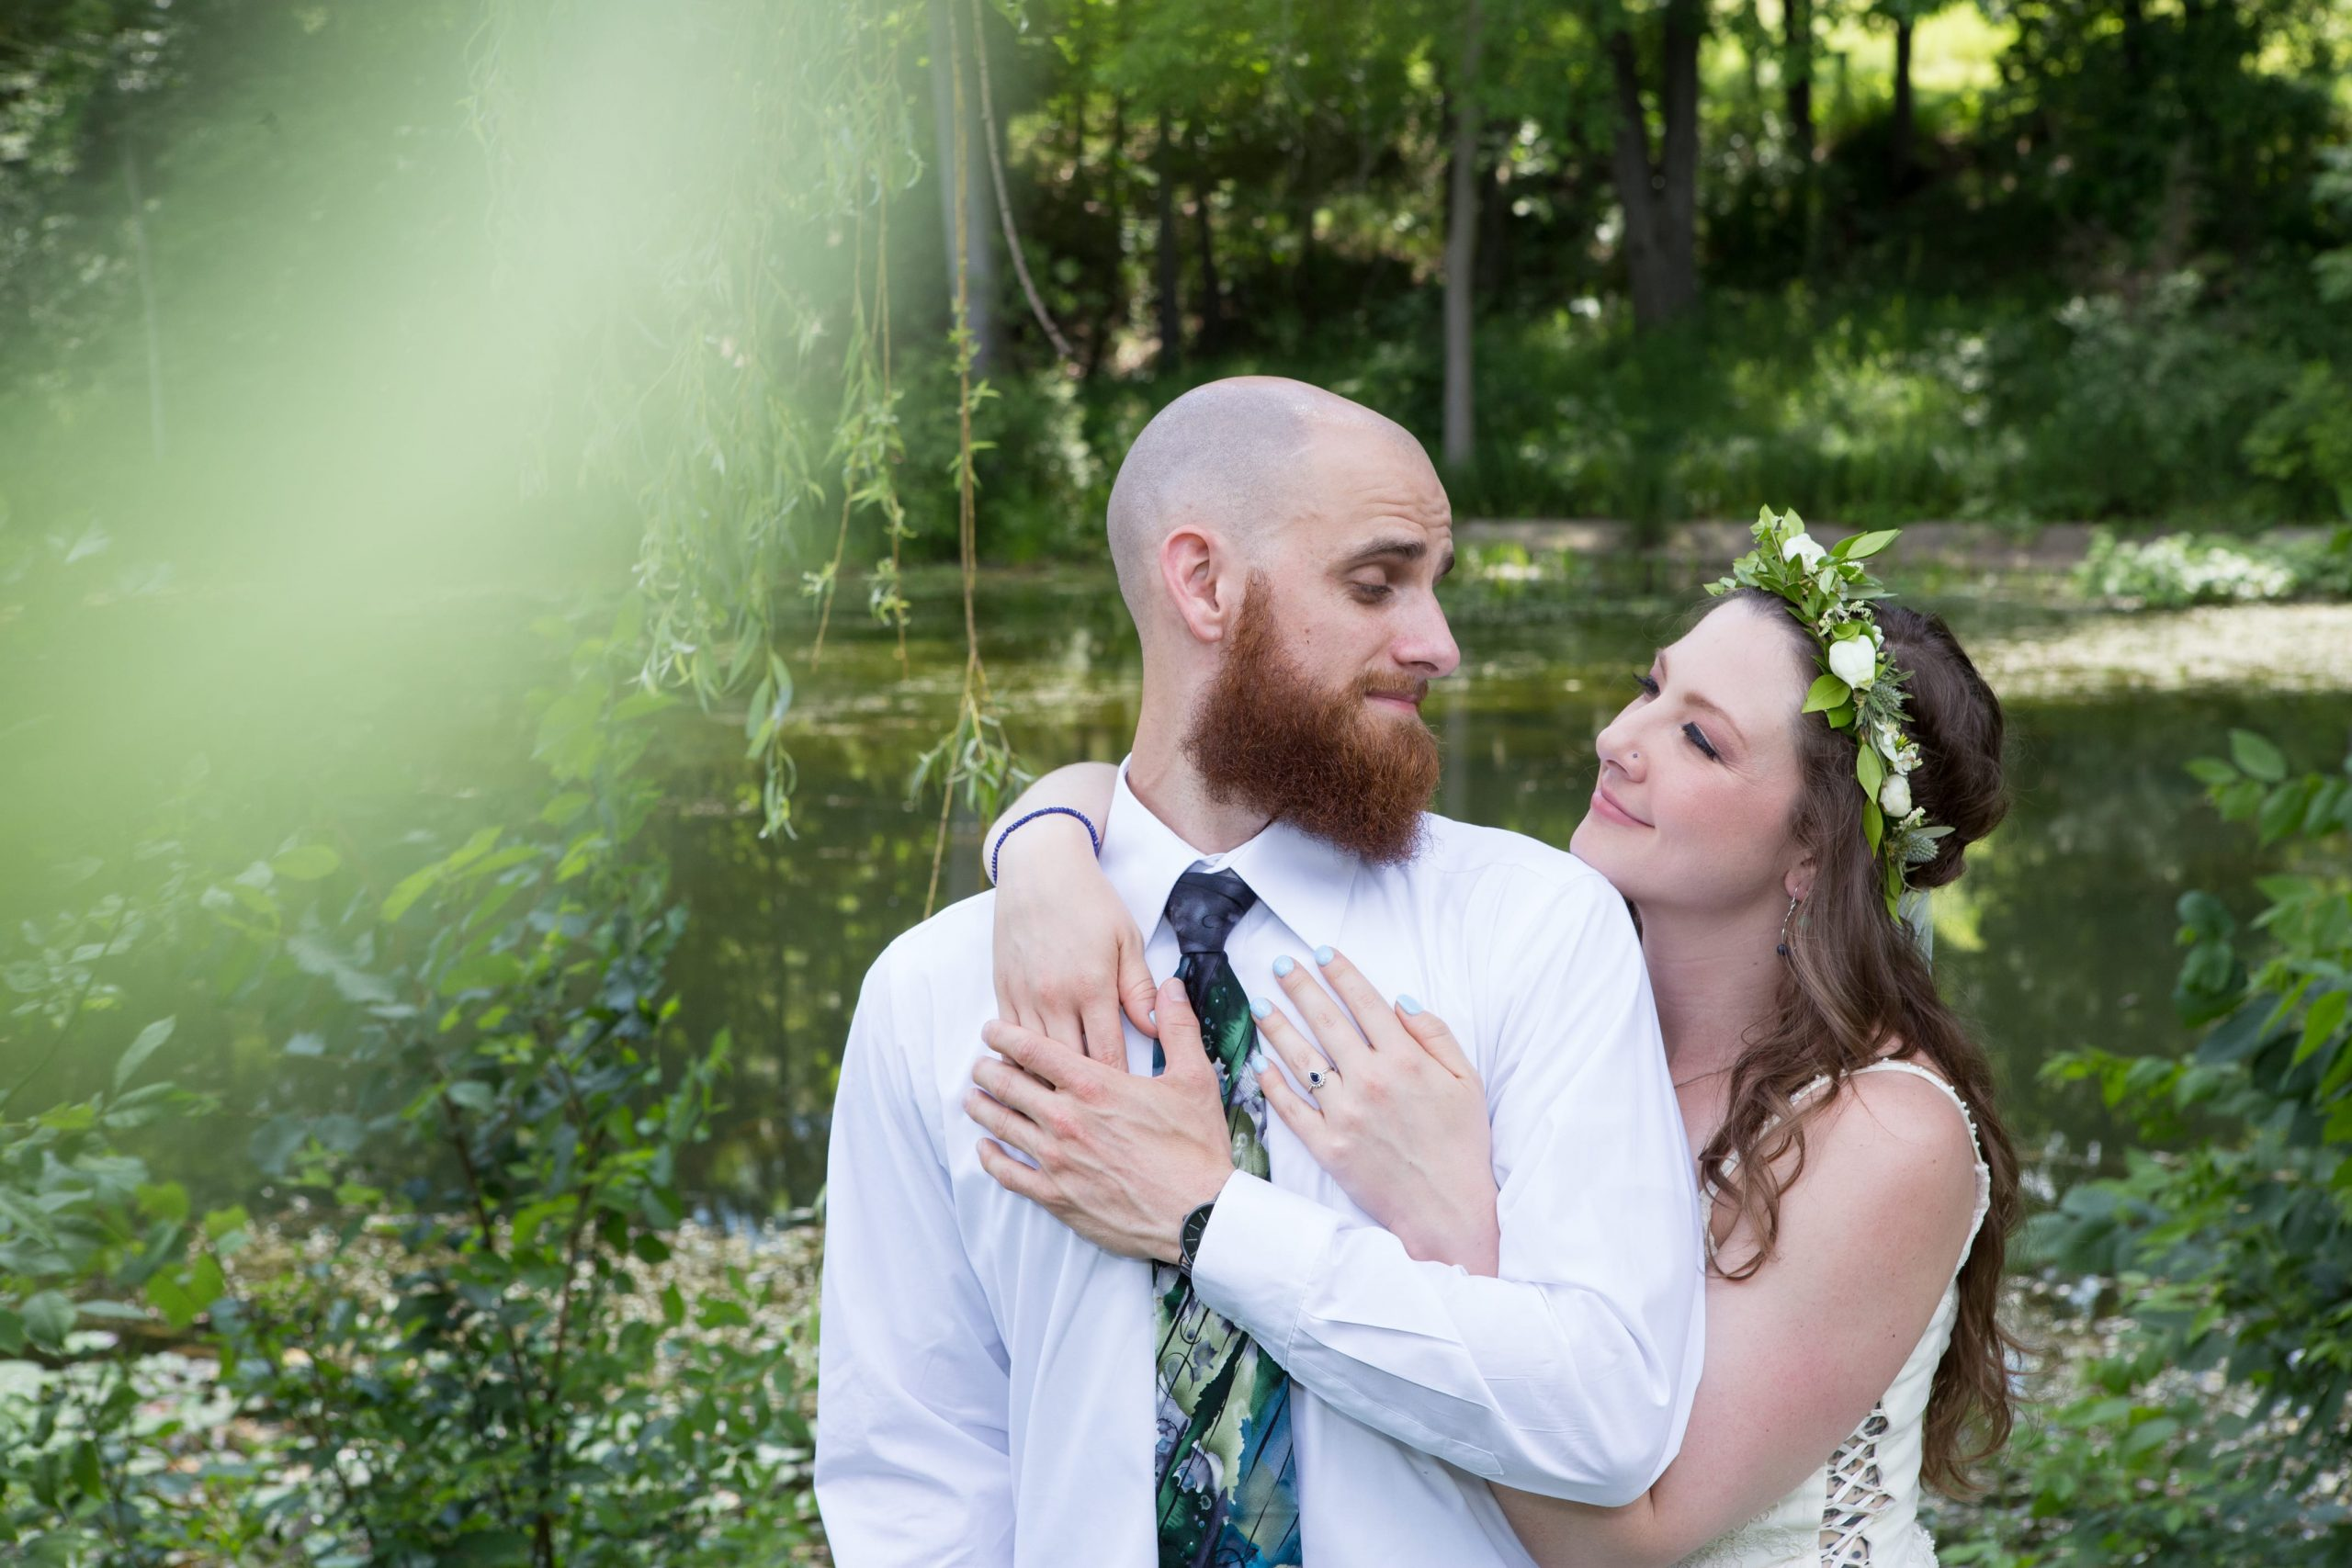 bride and groom embracing during wedding romantics session